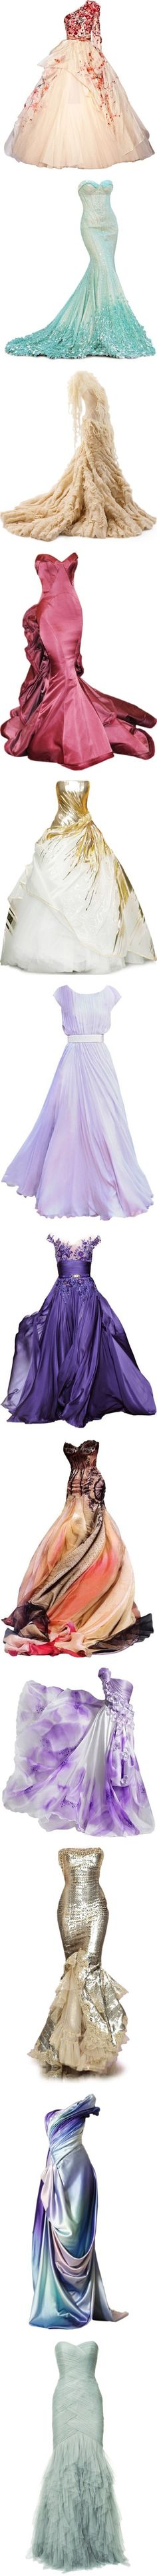 best beautiful frocks images on pinterest party dress ball